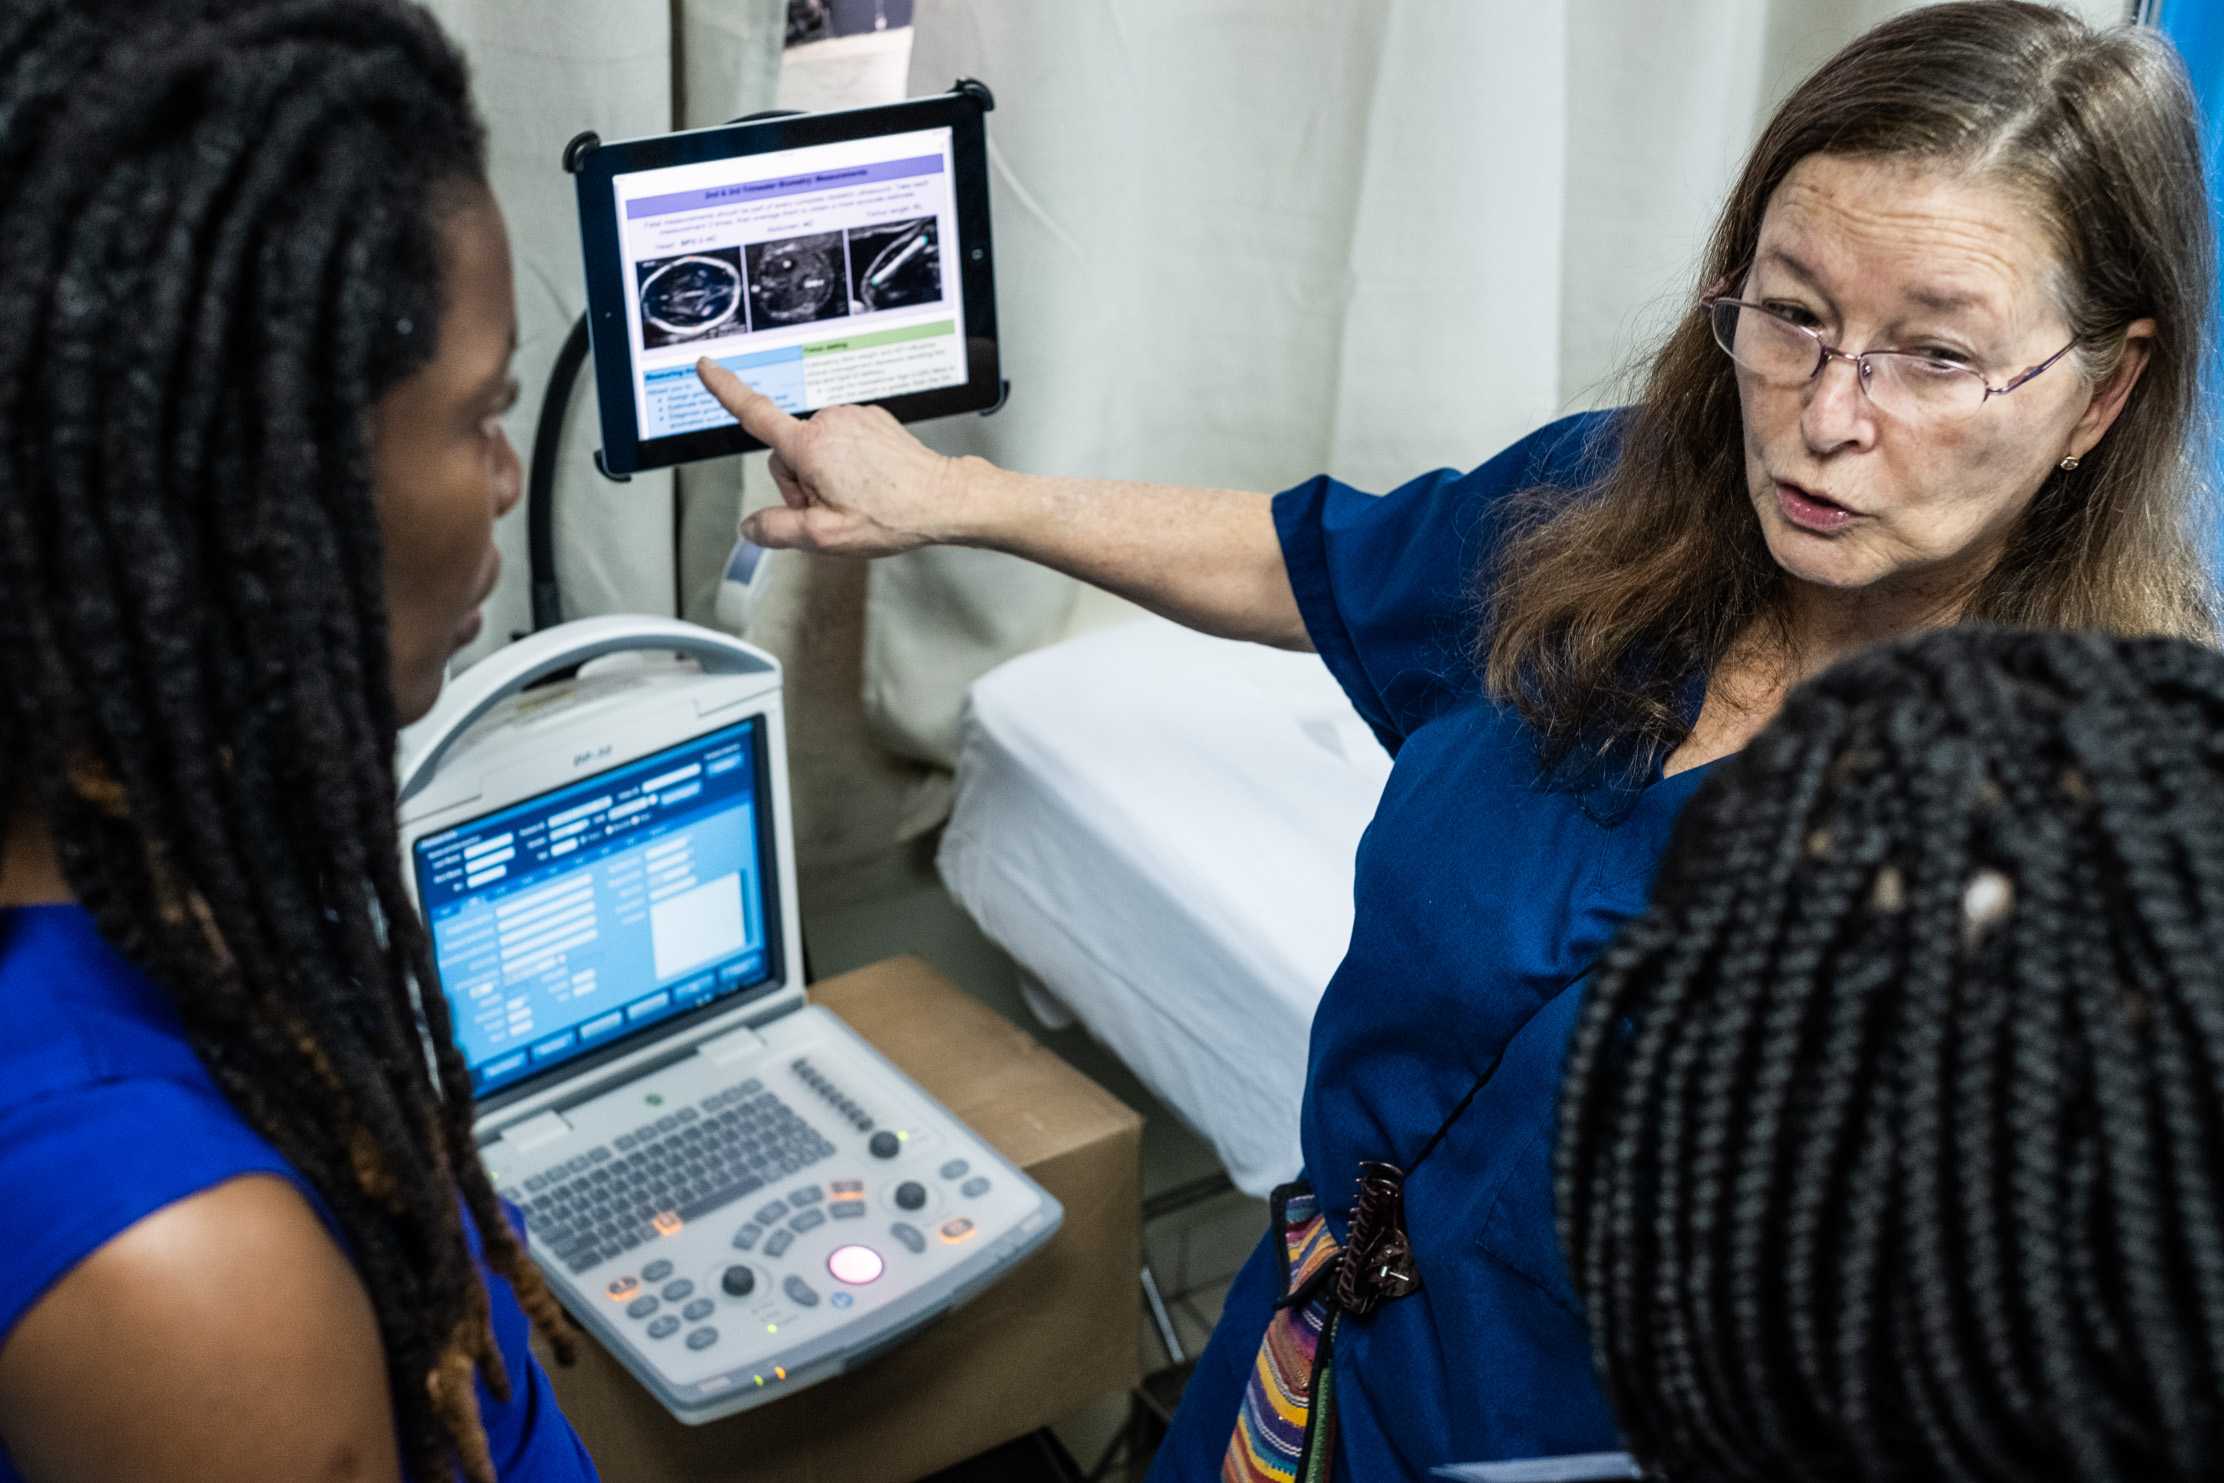 As part of the hands-on NYAGI training week, participants are provided re-purposed iPads loaded with 7D Imaging's NAV™ software to use alongside the ultrasound machine to accelerate learning.